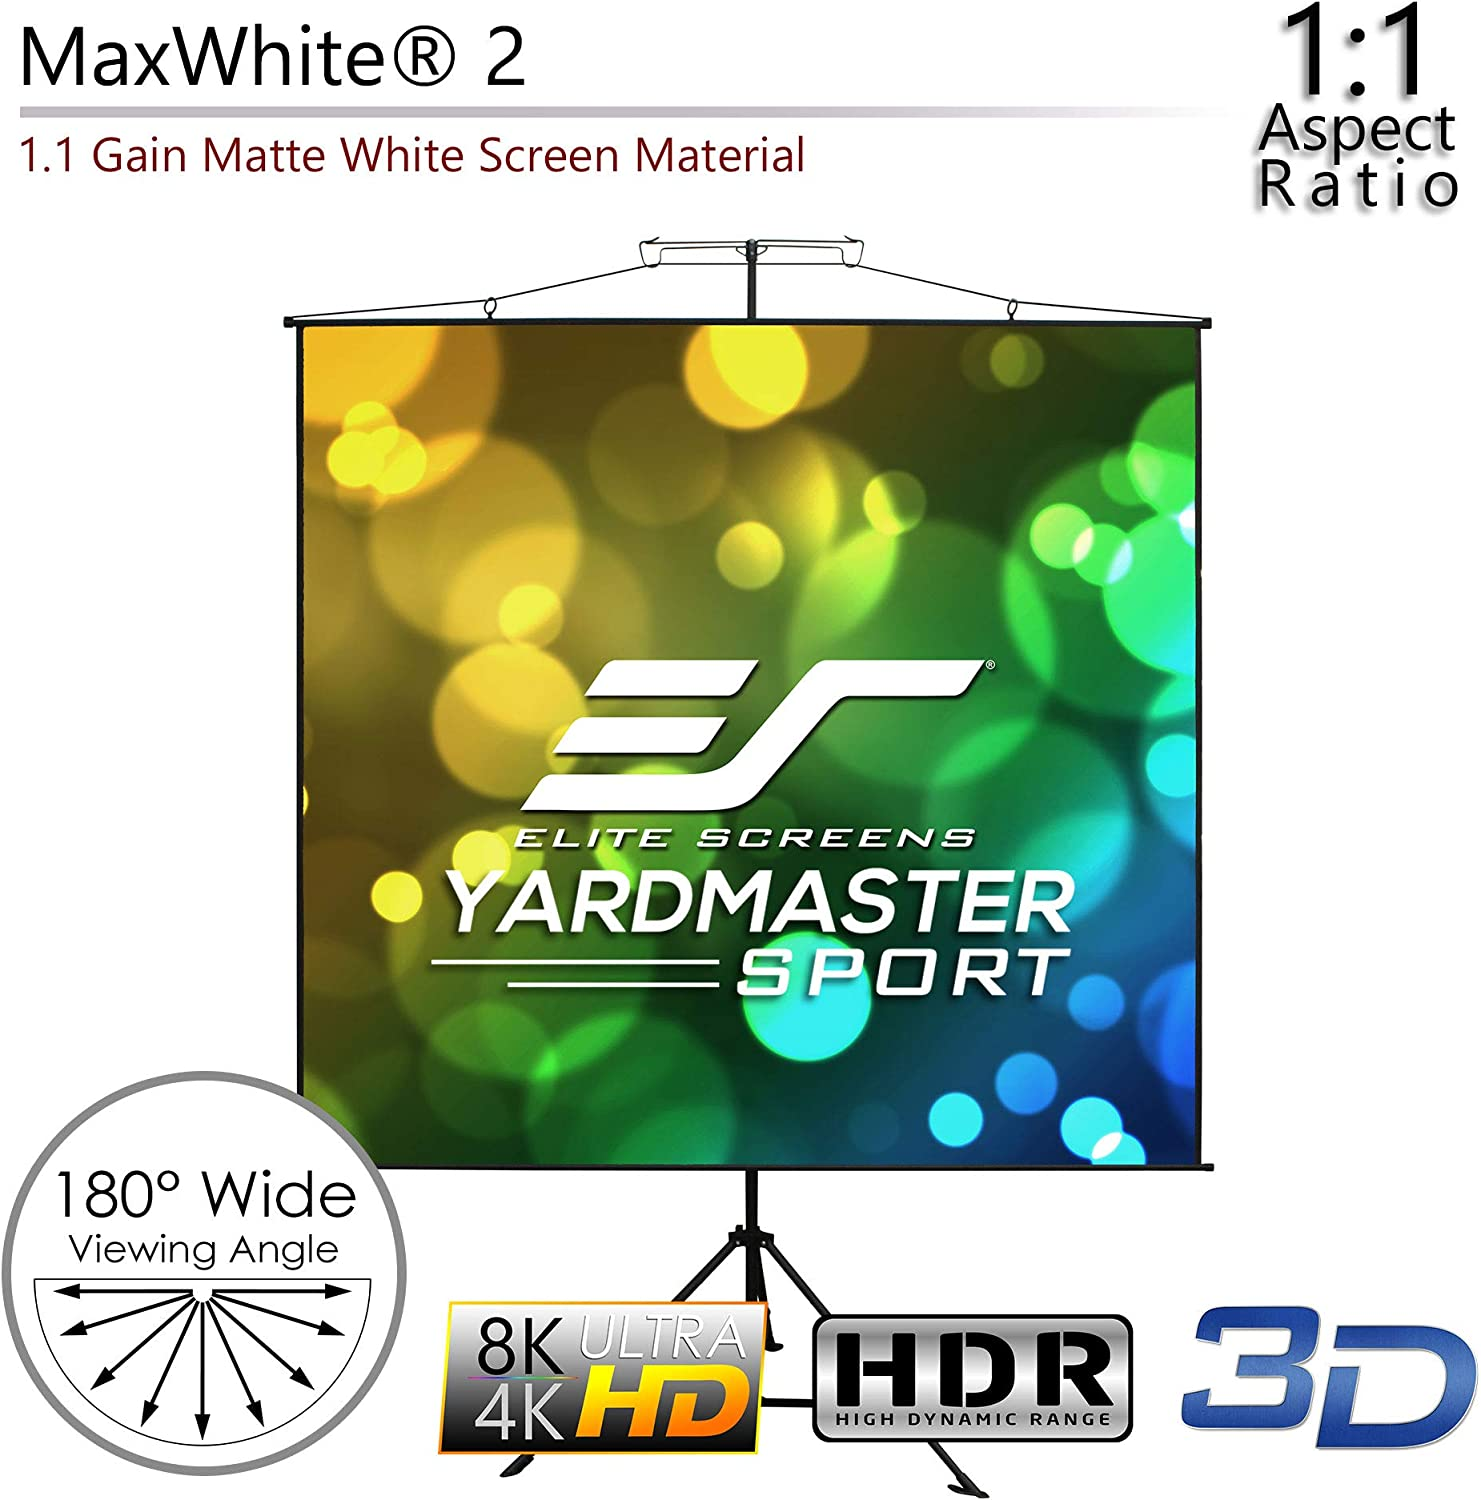 8K // 4K Ultra HD 3D Ready for Movie Home Theater Office 2-Year Warranty 2-in-1 Portable Indoor Outdoor Projector Screen with Carrying Bag Elite Screens YardMaster Sport Series 57 INCH DIAG.